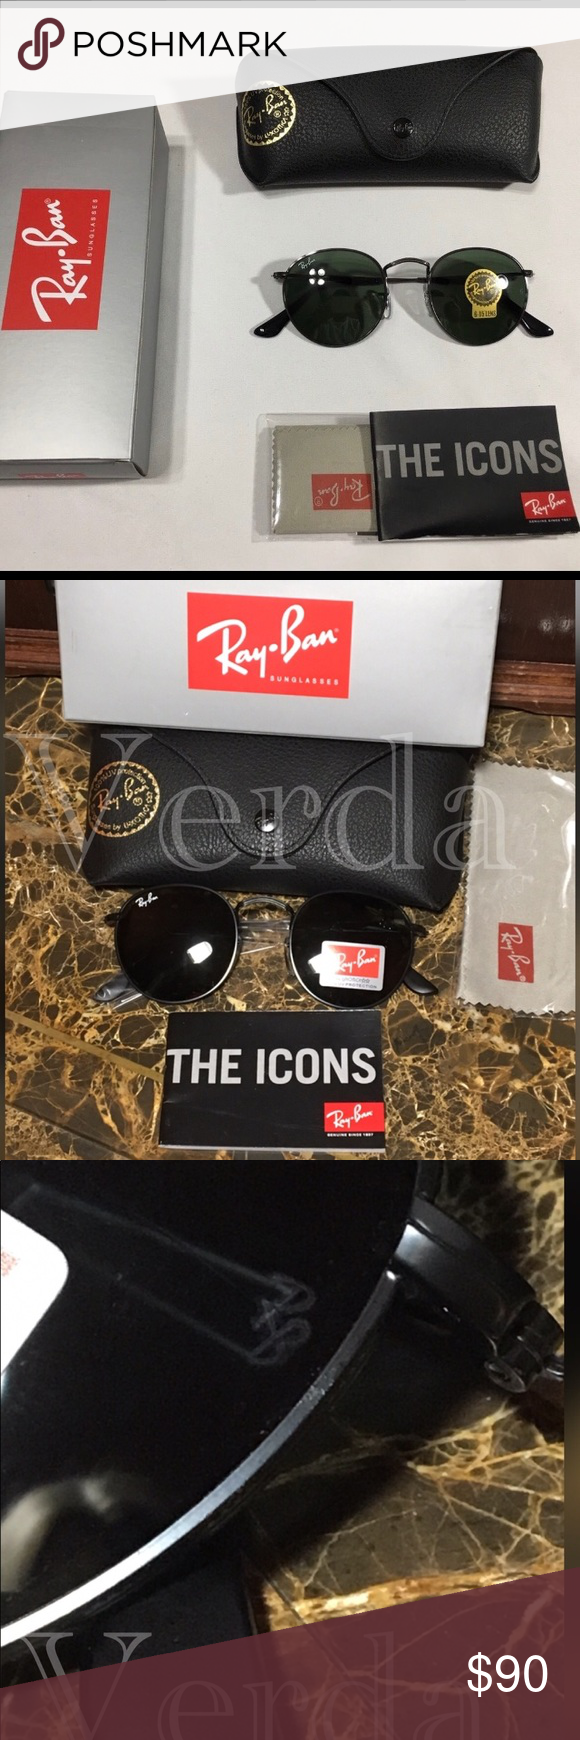 68b3be804971a Ray Ban sunglasses RB3447 Ray Ban sunglasses PRICE REDUCED FOR BLACK FRIDAY!!  Price is